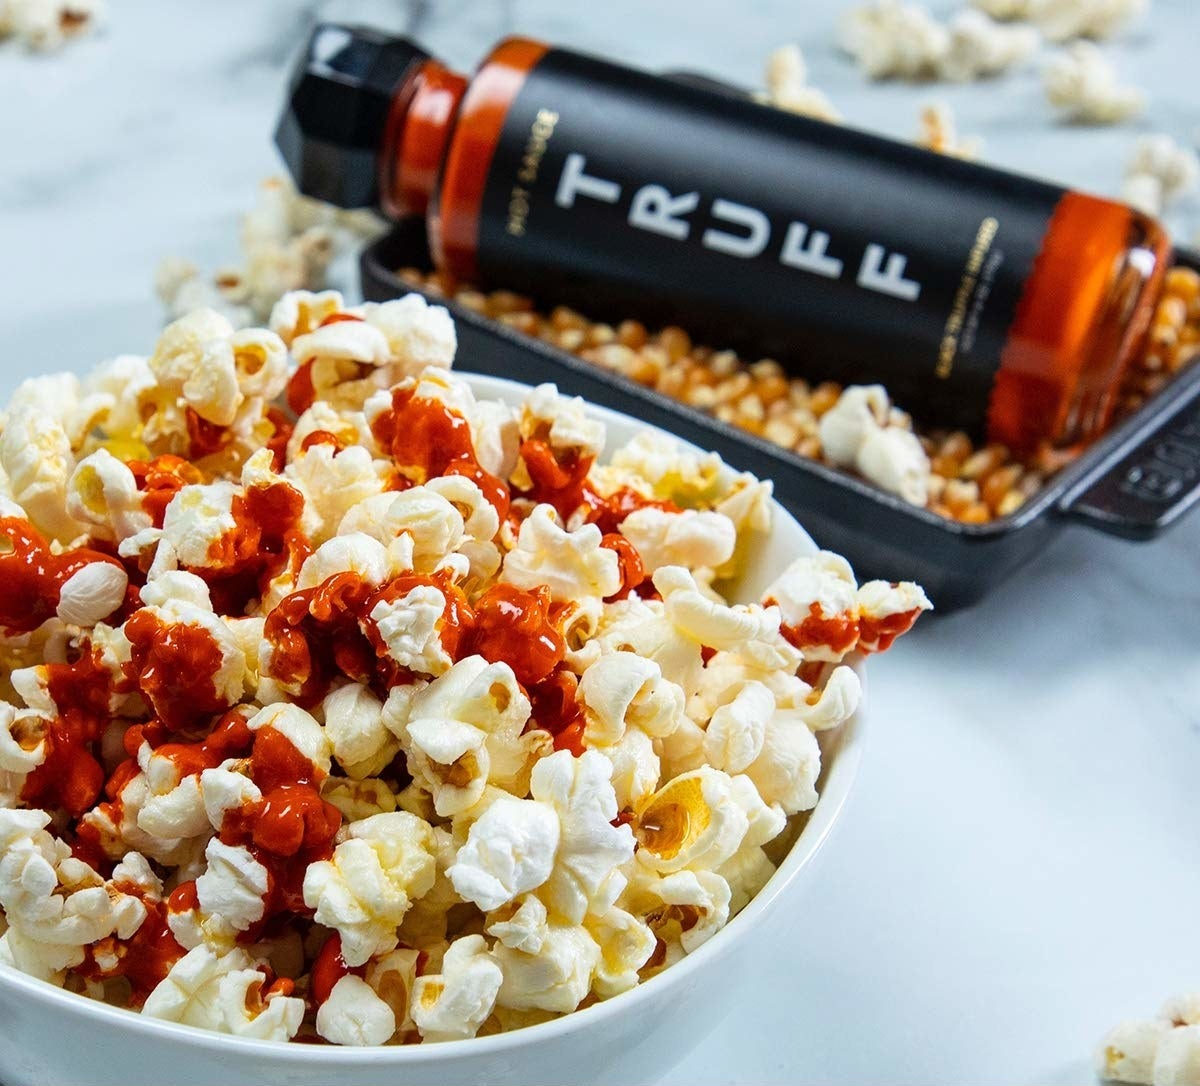 Truff hot sauce on popcorn